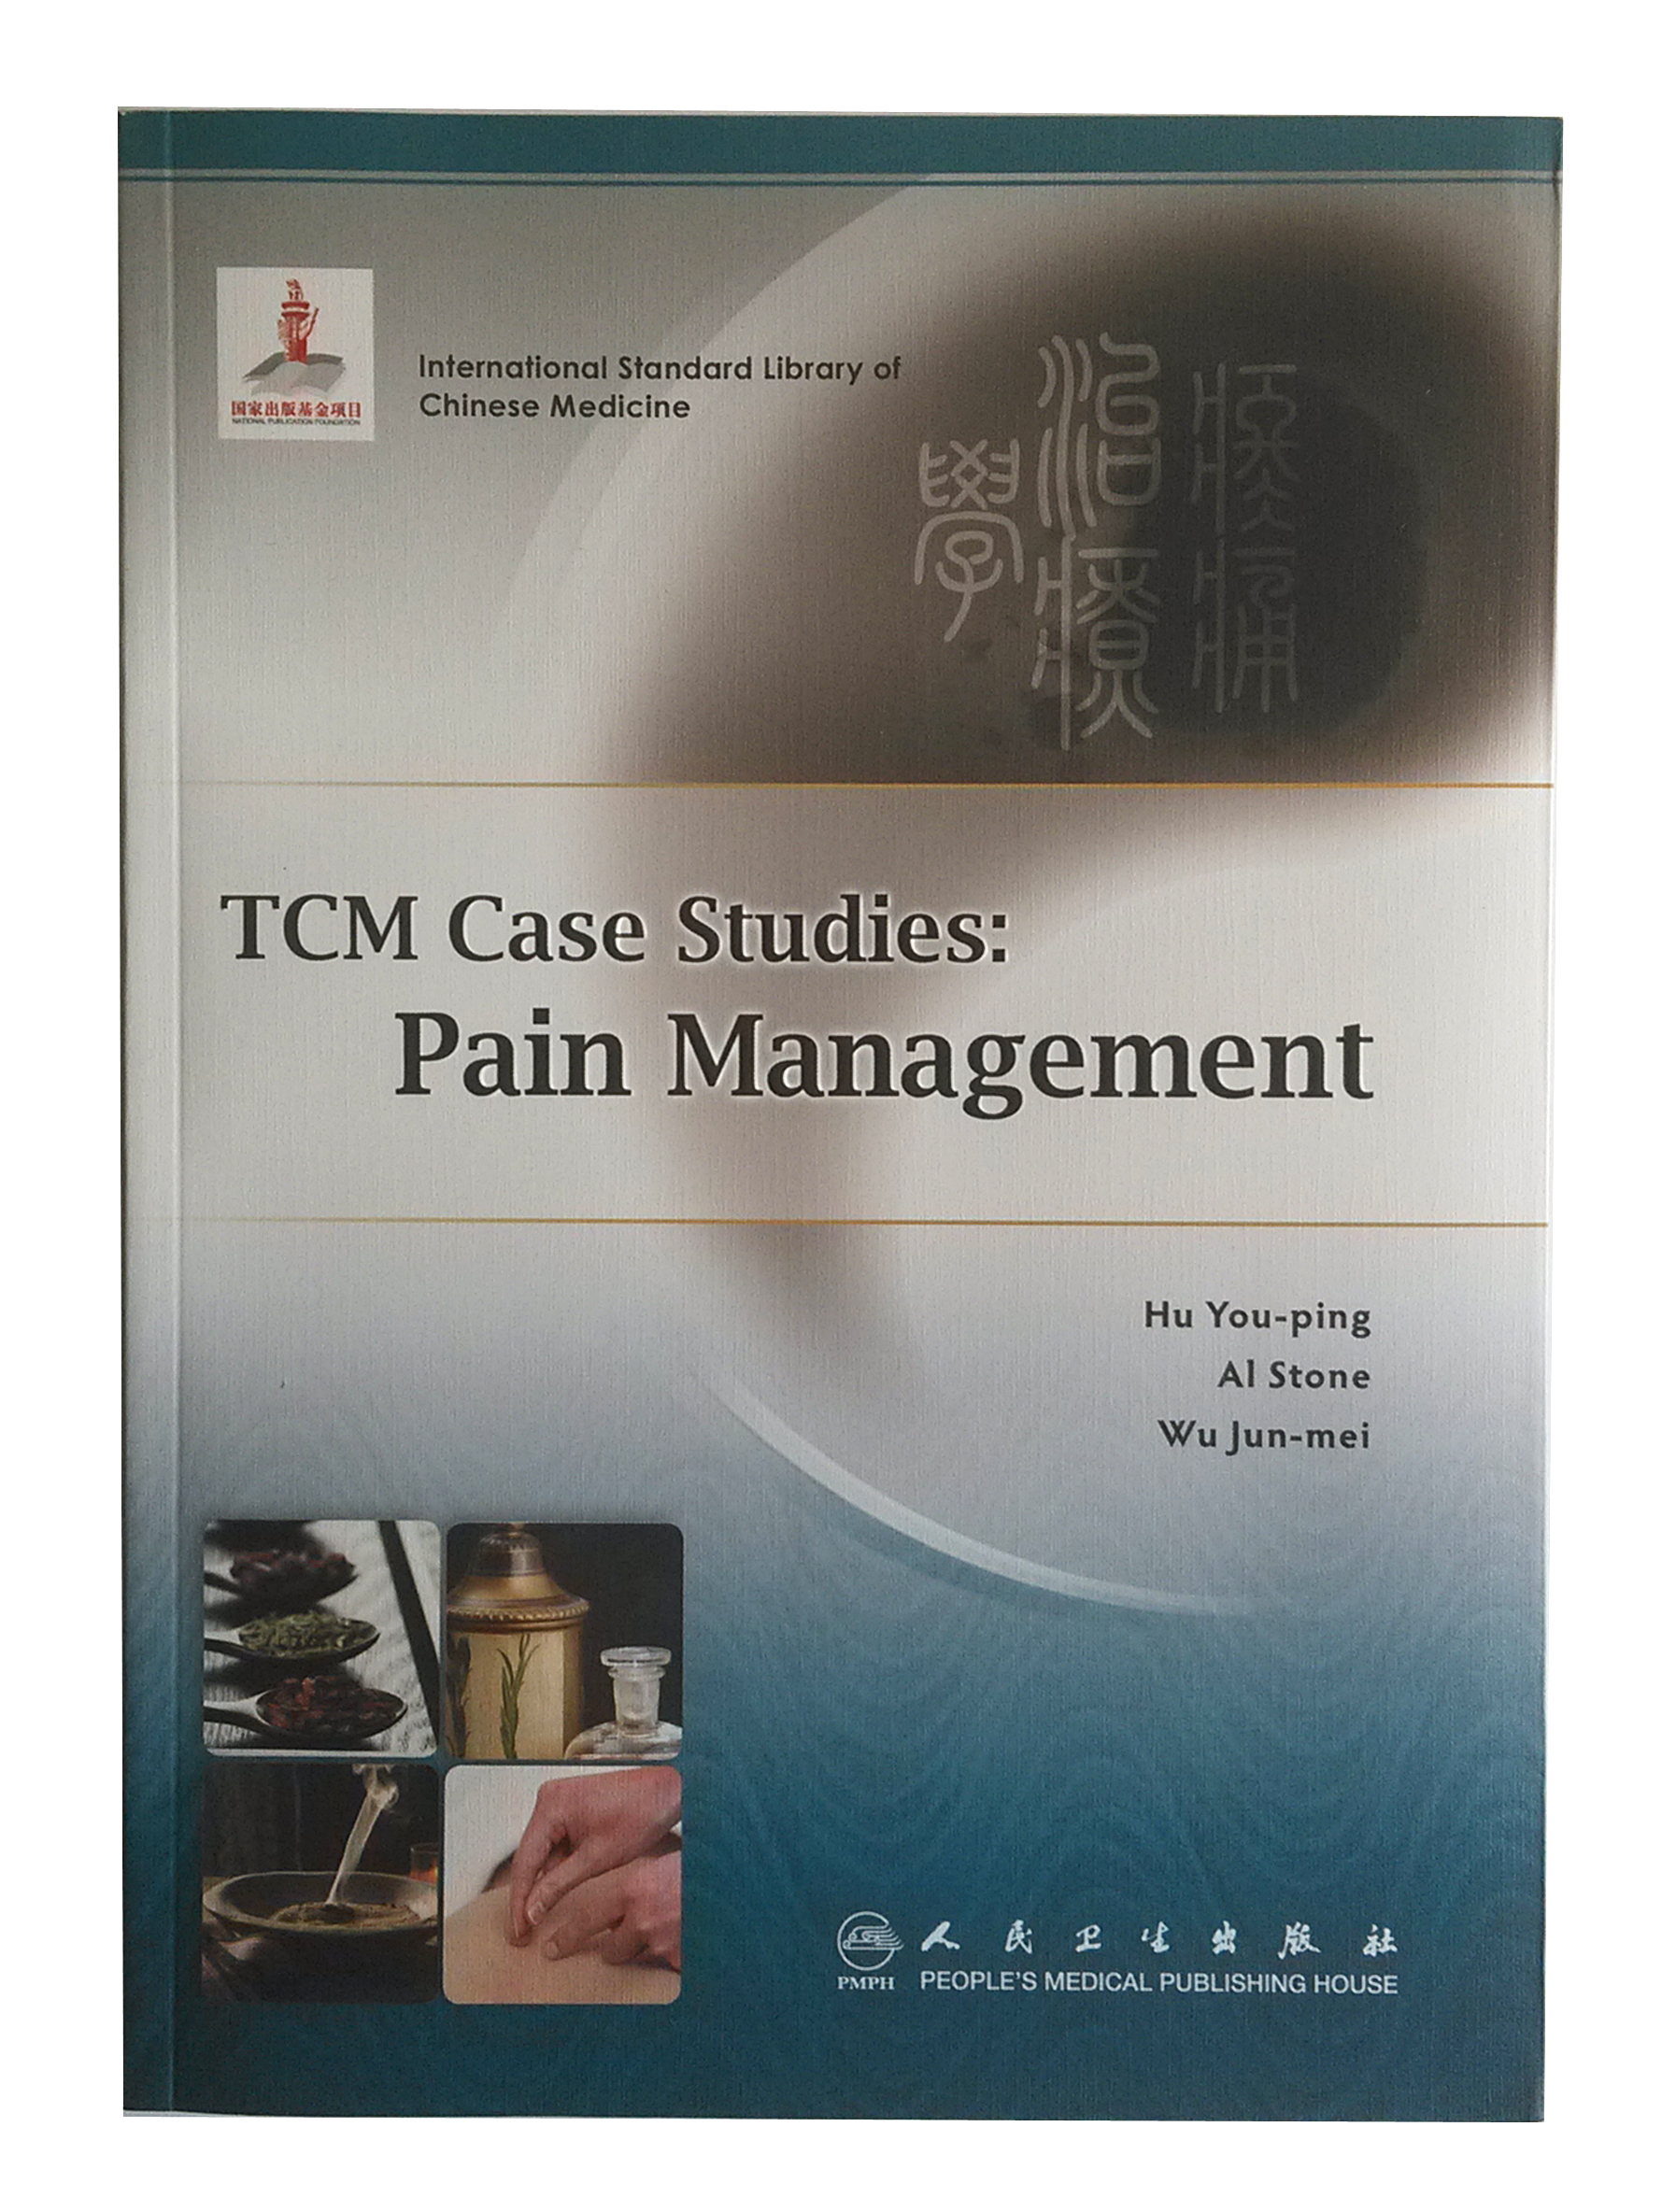 postoperative pain management case study The efficacy of postoperative pain management with of postoperative pain management with took post- operative analgesia during the study.